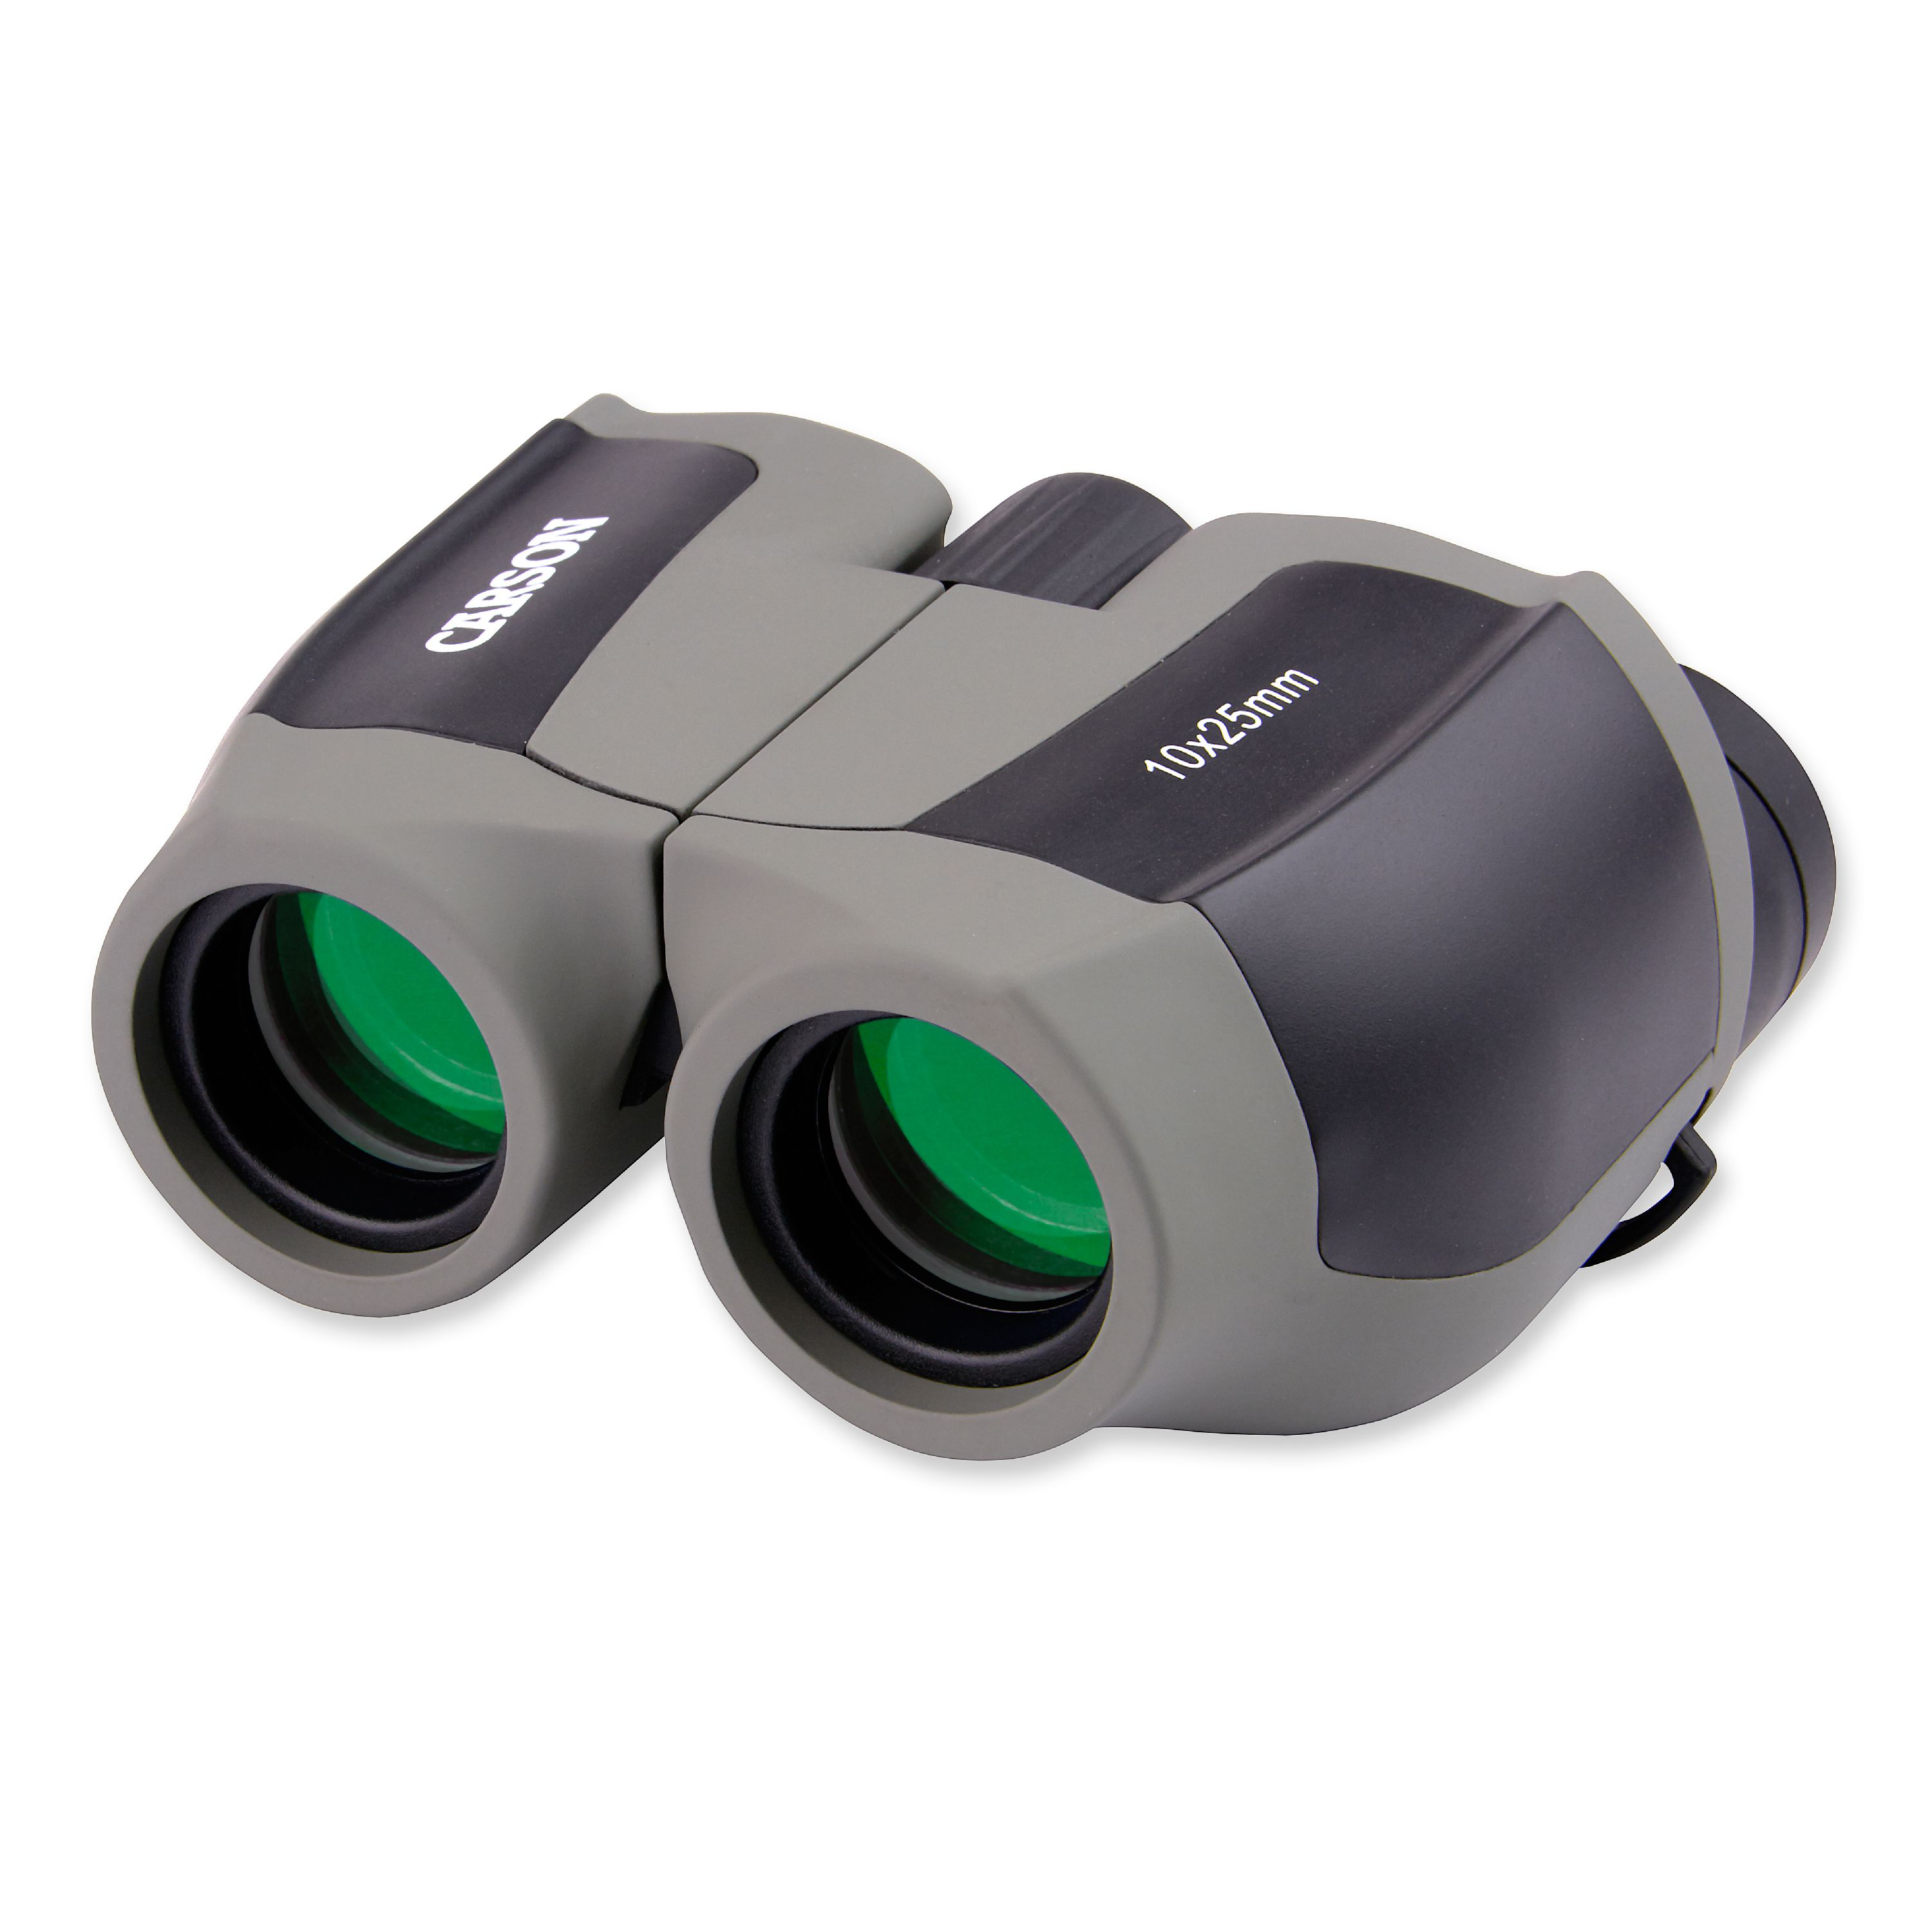 Carson 10x25mm Scout Series Compact Binoculars by Carson Optical